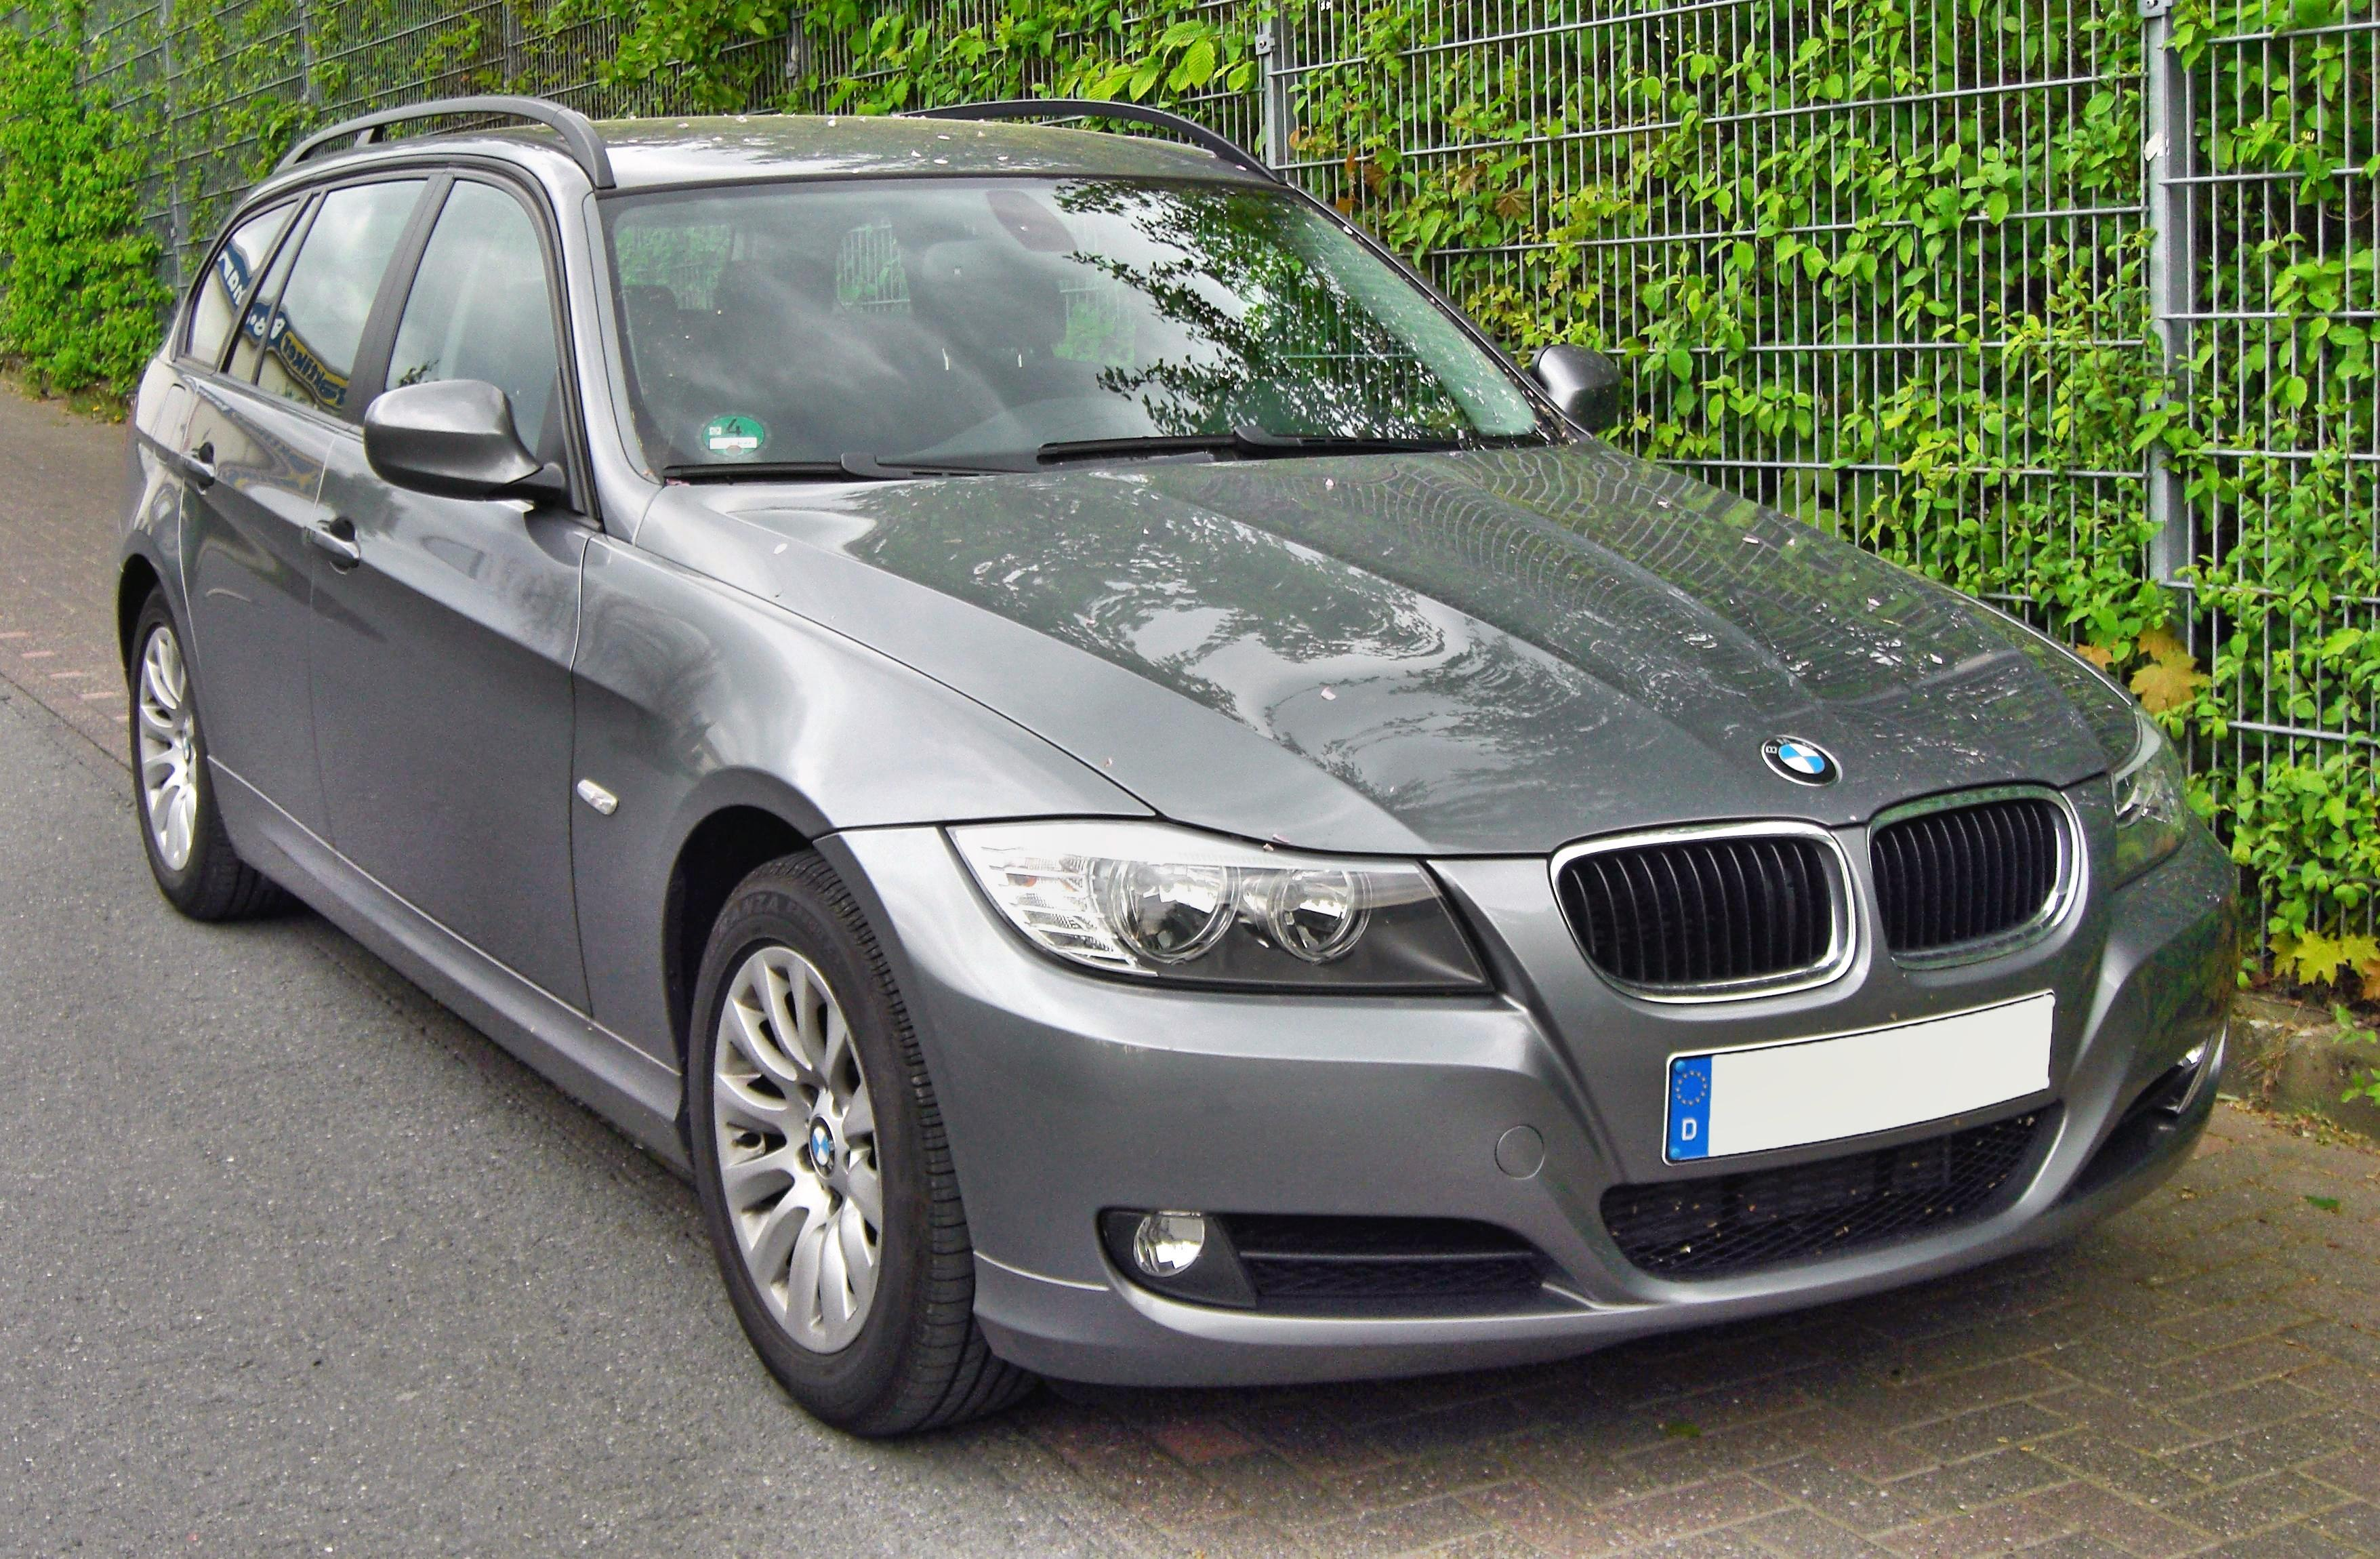 2006 Bmw 3 series touring (e91) – pictures, information and specs ...